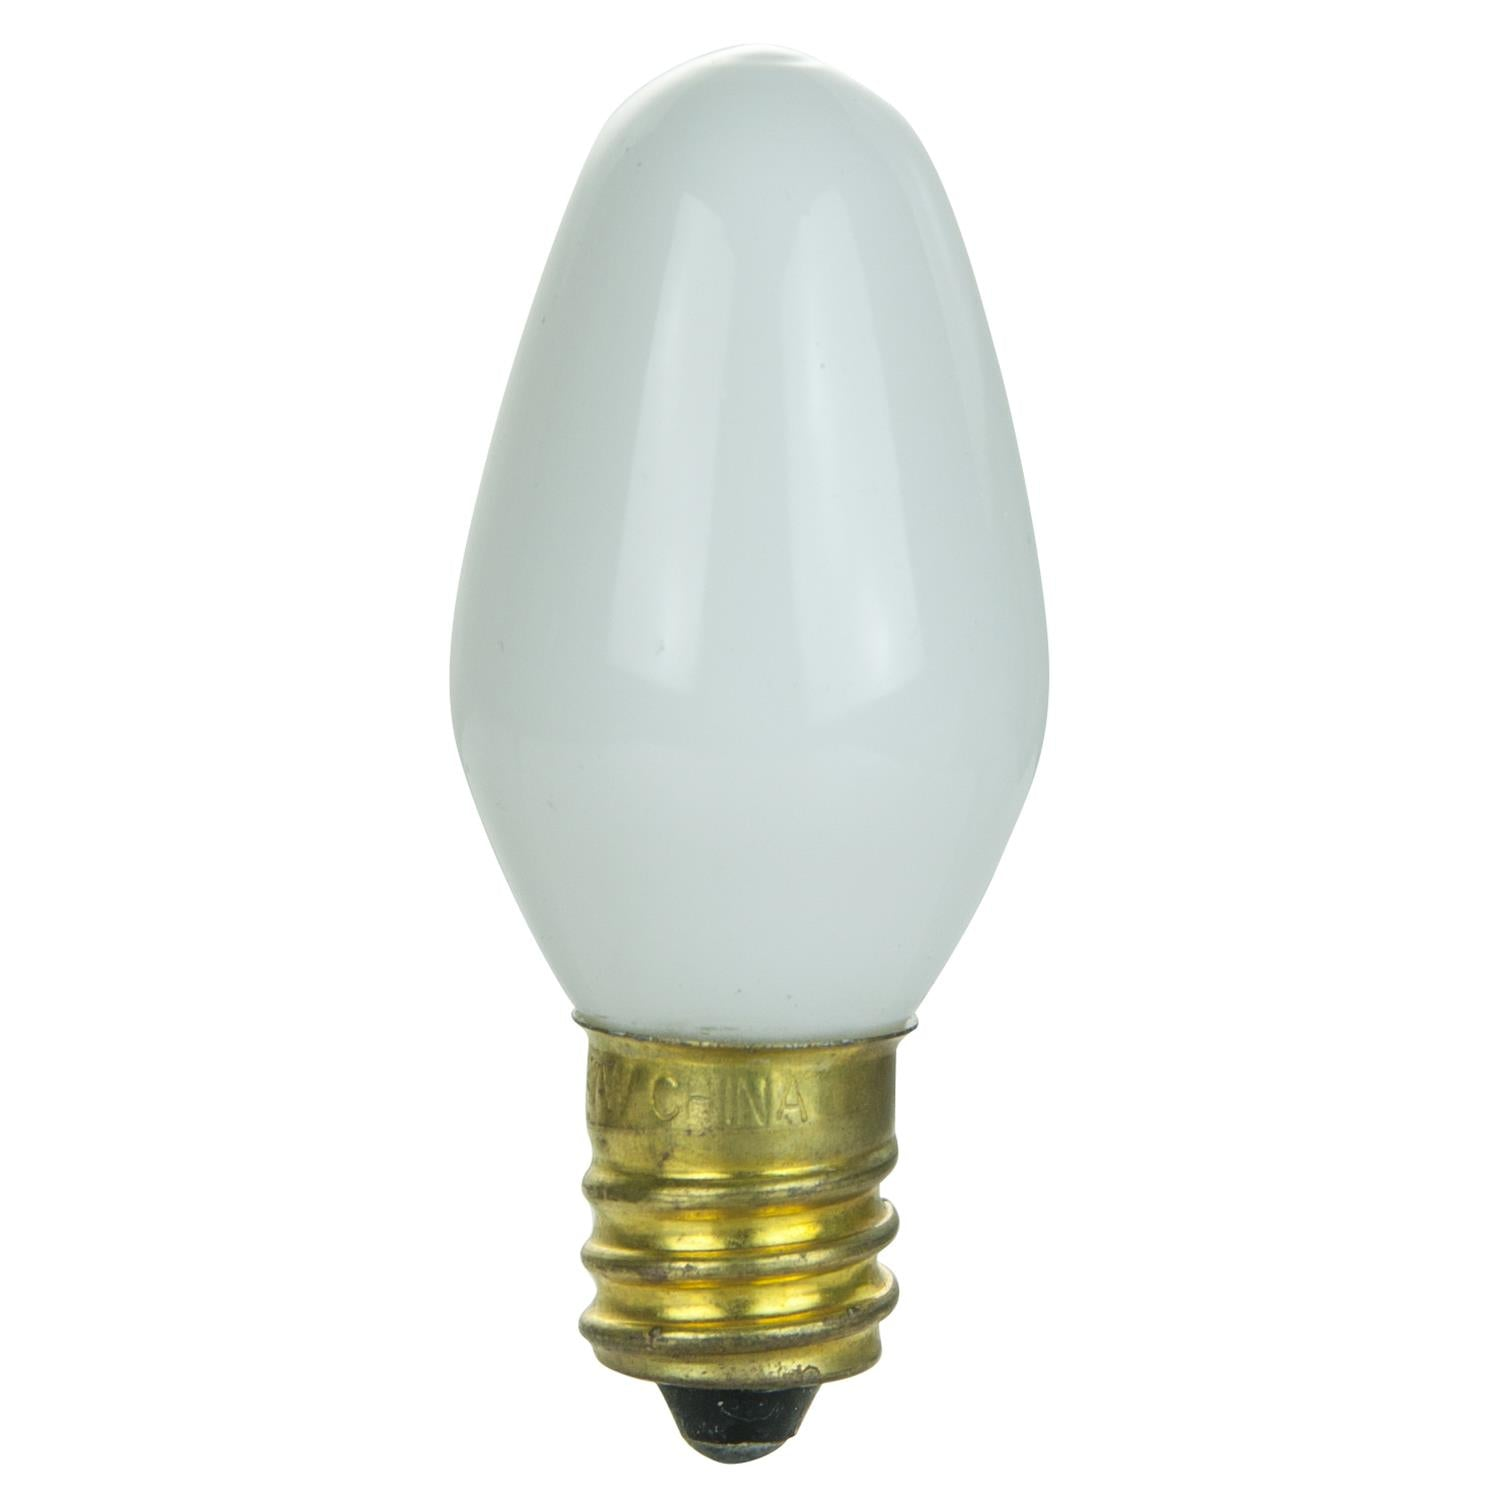 25Pk - SUNLITE 4w C7 120v Candelabra Base Night Light bulb - White finish